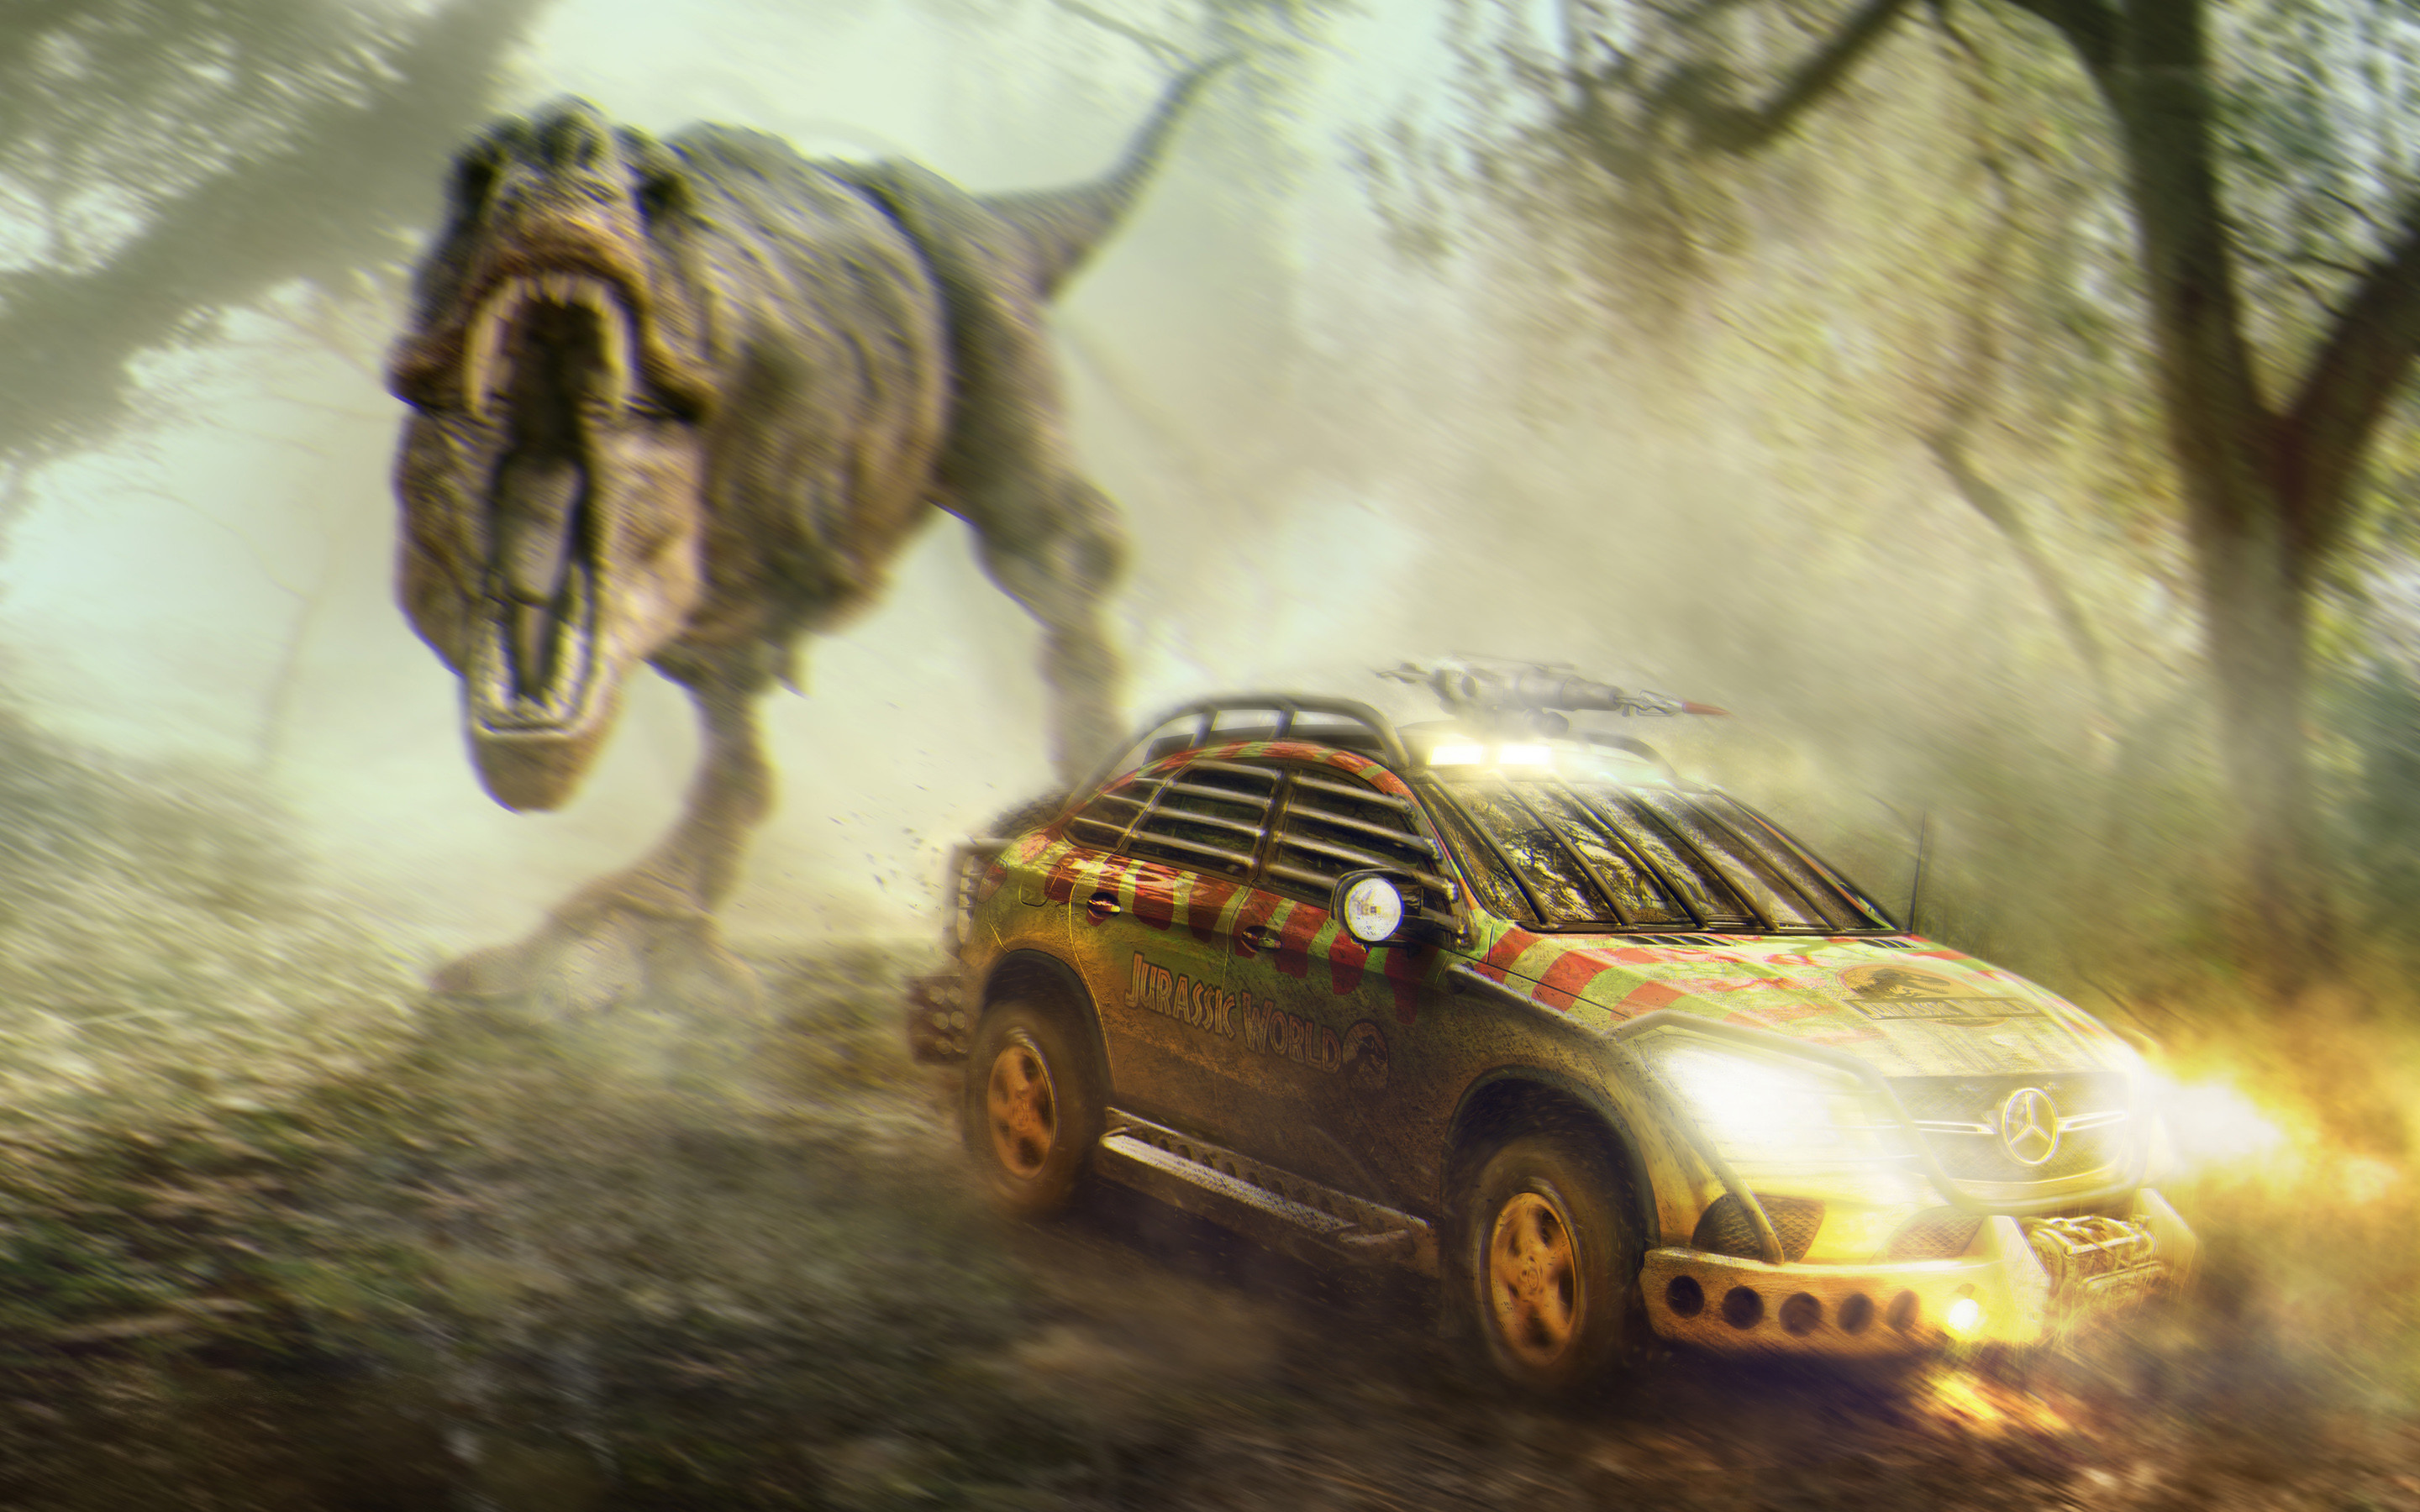 Res: 2880x1800, Jurassic World Mercedes Benz GLE Coupe